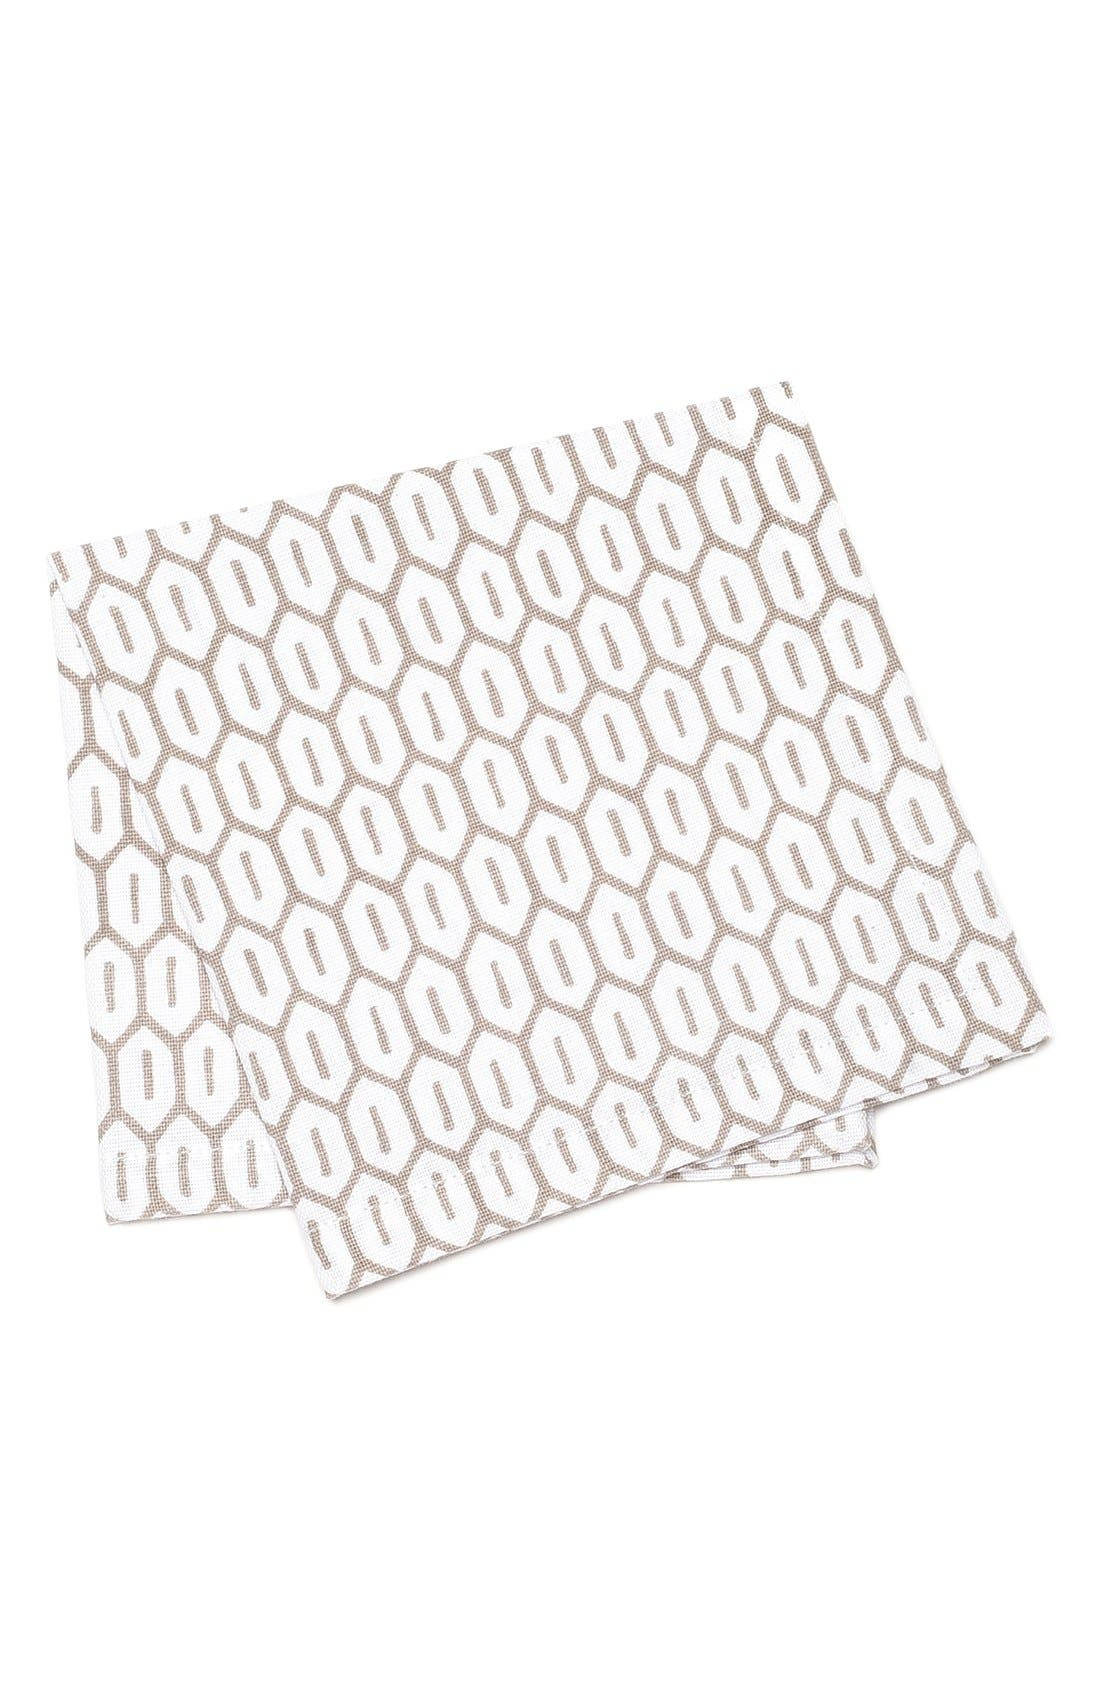 zestt 'Andorra' Cocktail Napkins (Set of 4)